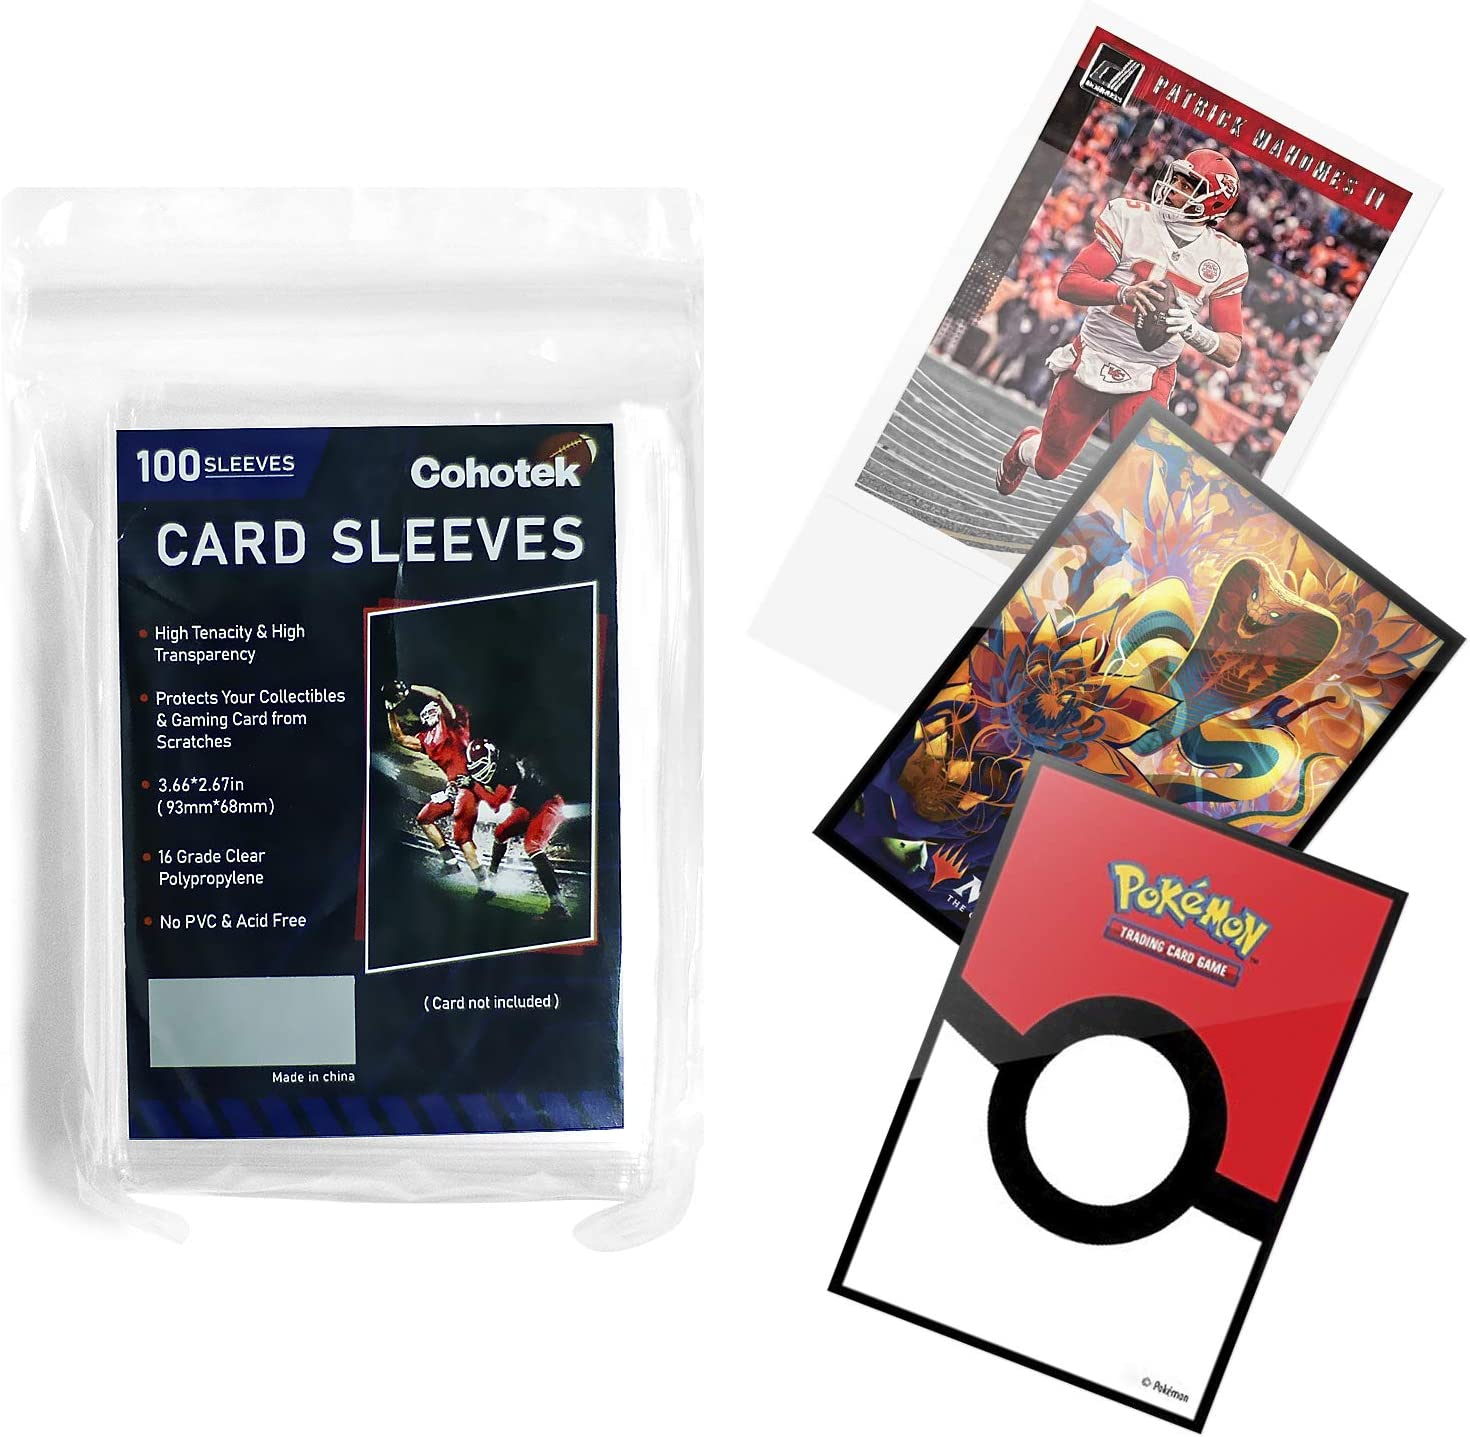 """100 Counts Clear Soft Card Sleeves, Cohotek Trading Card Sleeves Deck Protector Sleeves for Standard Size Cards 2.5"""" x 3.5"""": Office Products"""